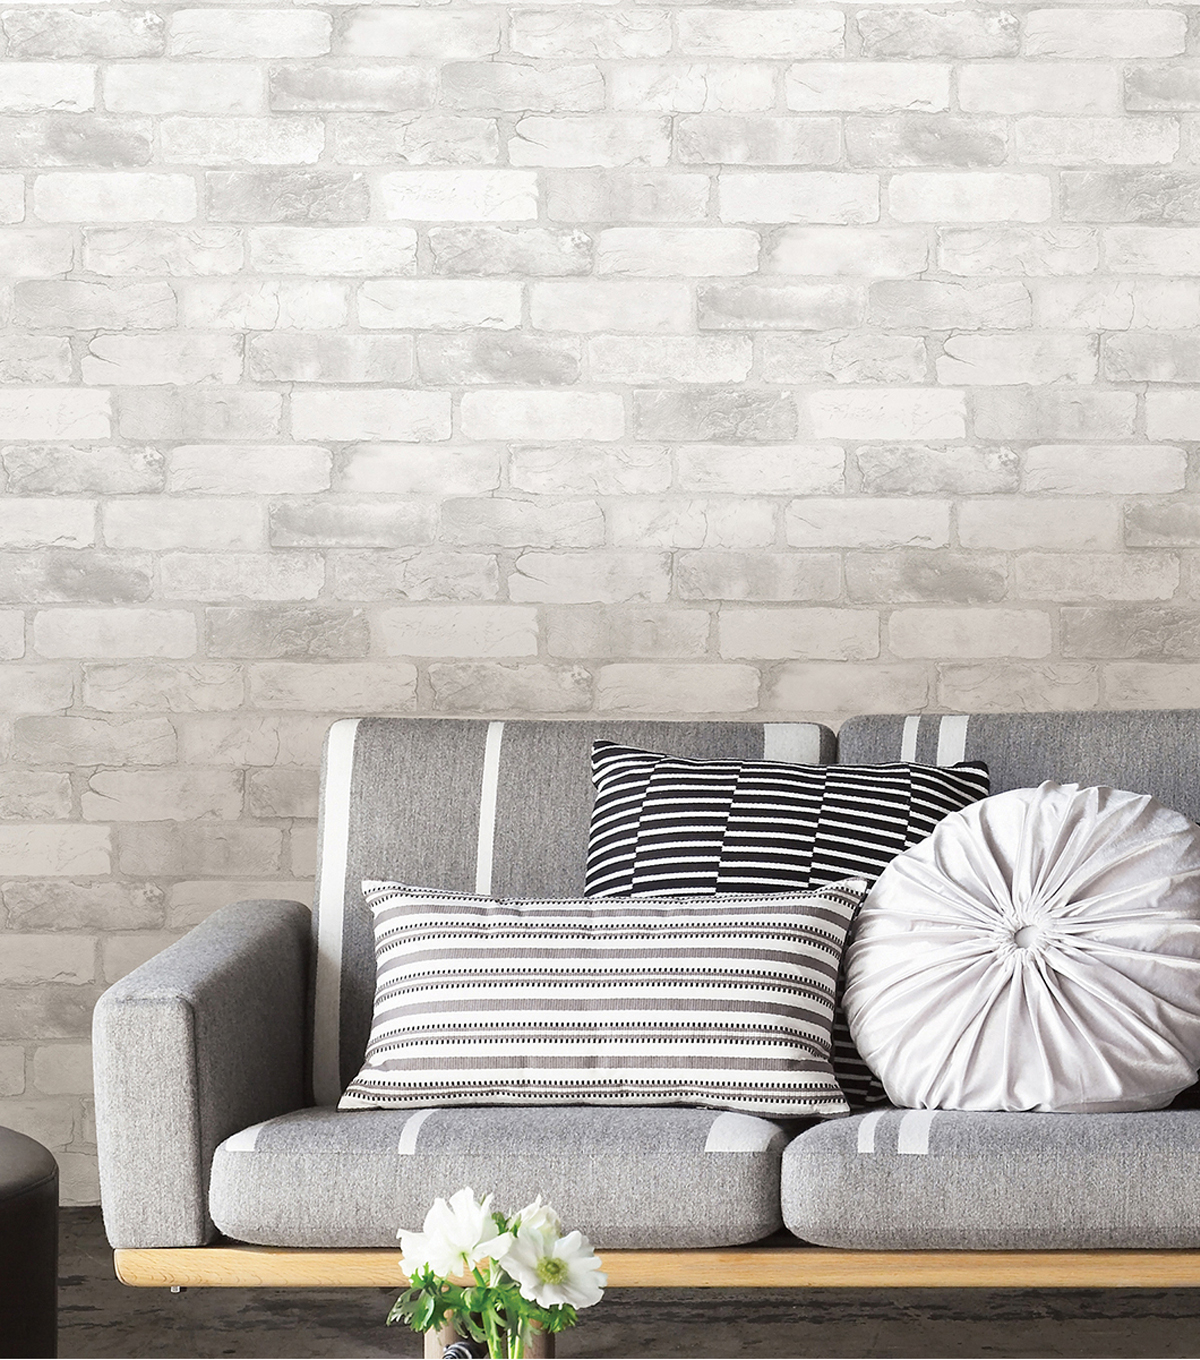 WallPops NuWallpaper 3D Peel & Stick Wallpaper-Brick